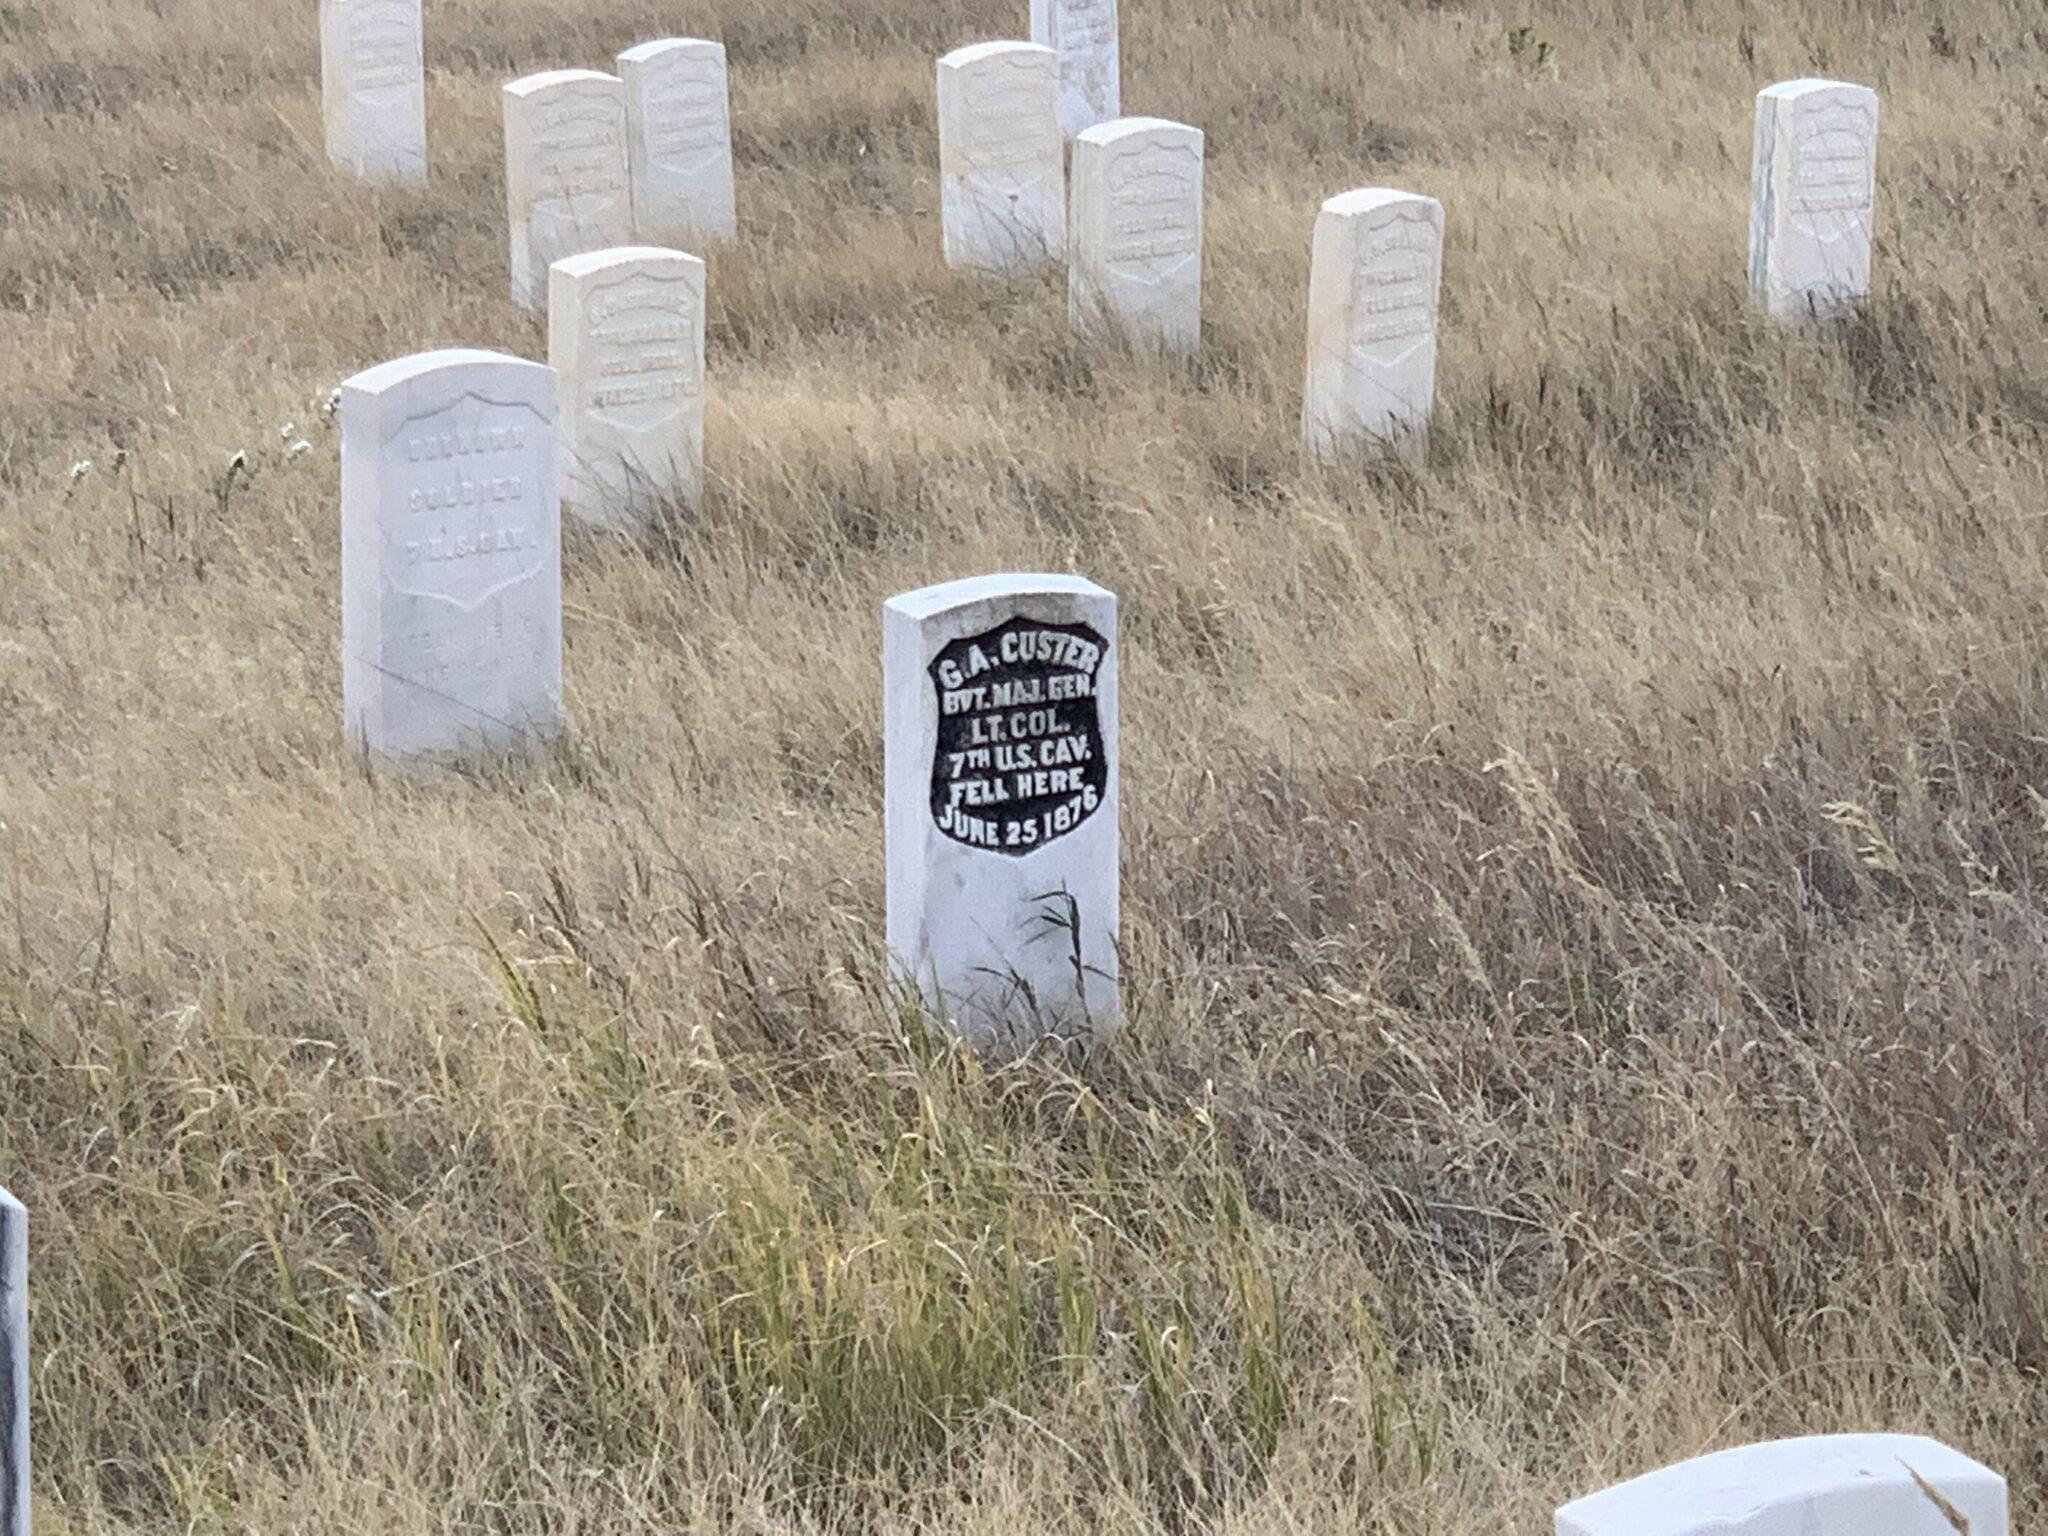 Marker with Custer's name where he fell